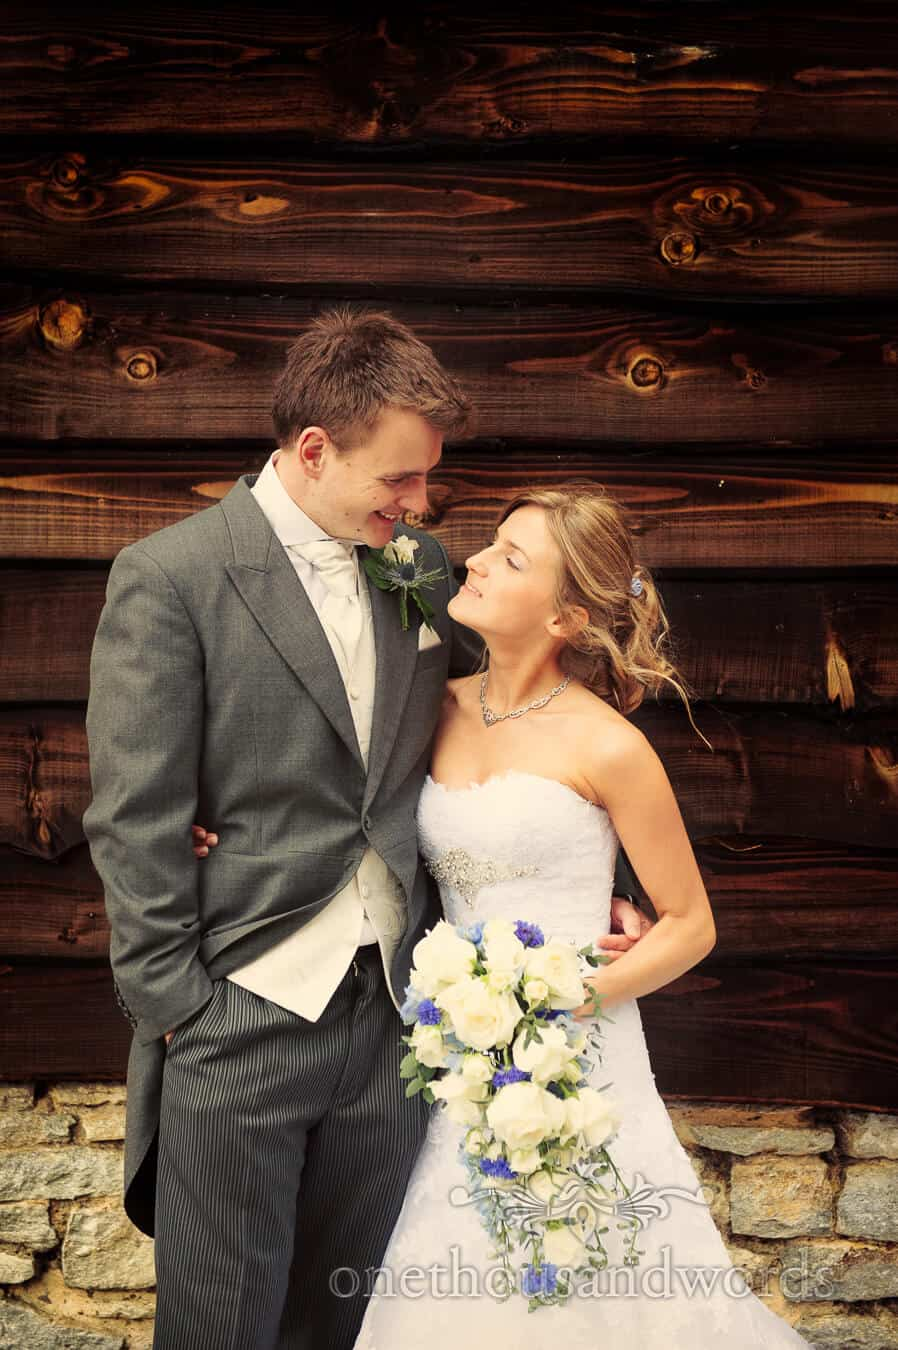 Bride and groom portrait with wood backdrop at Country Theme Wedding